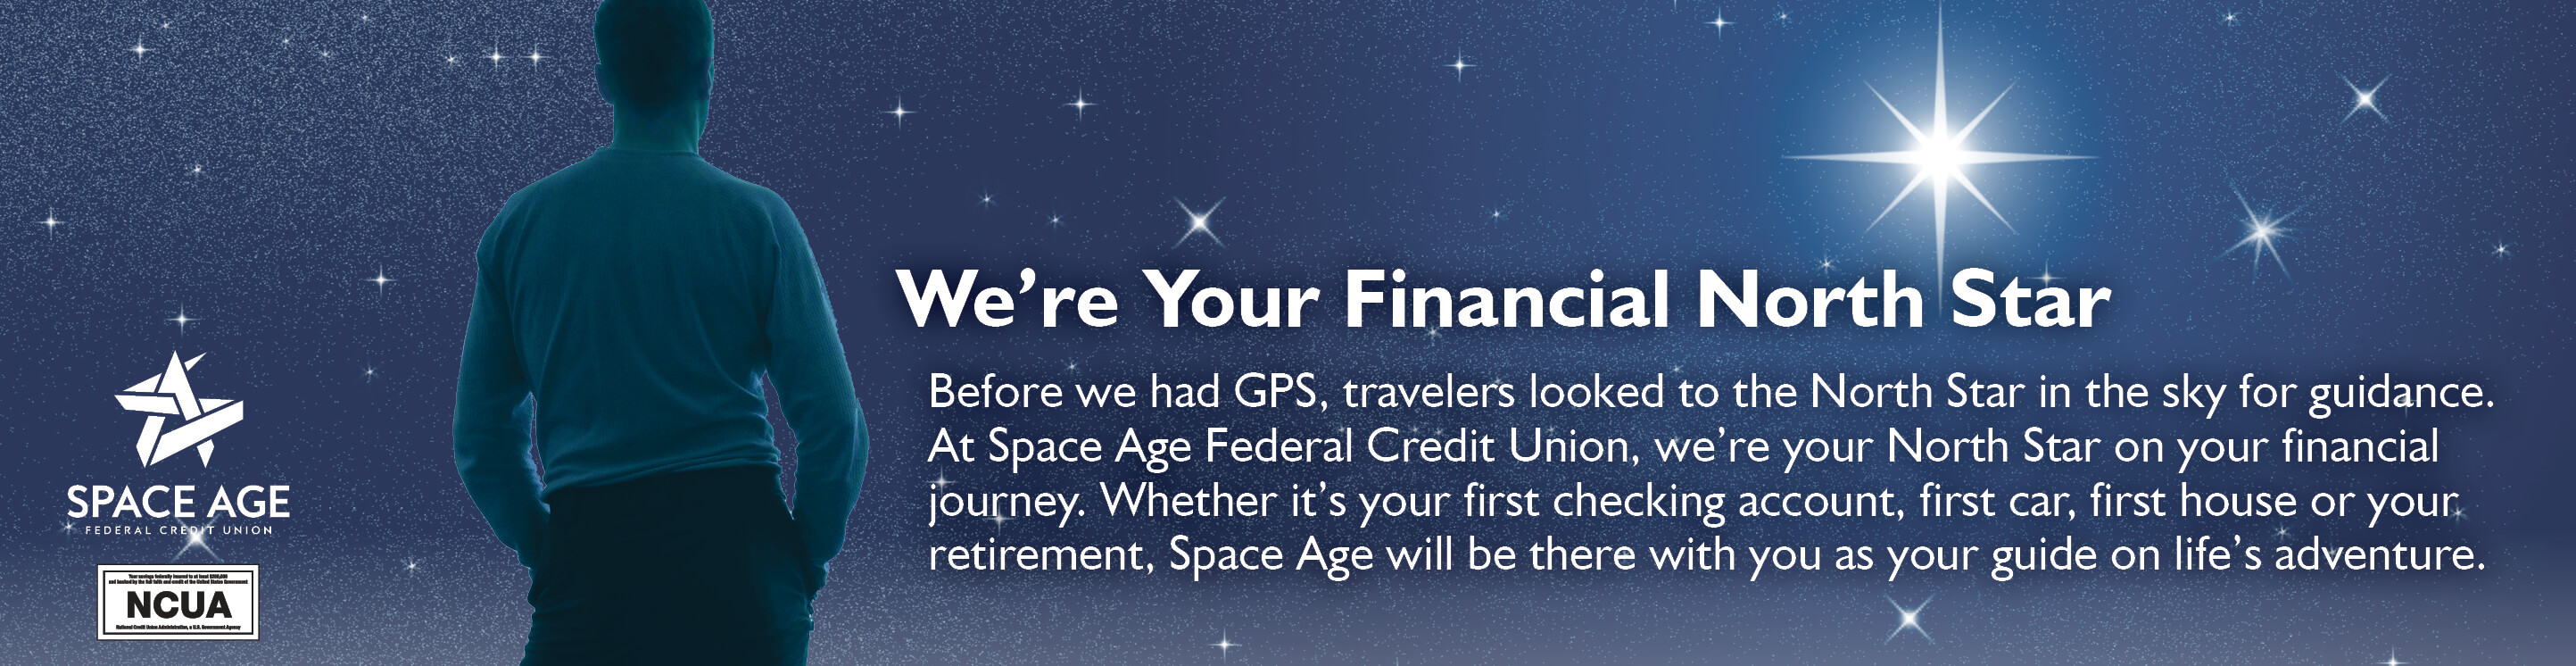 We're Your Financial North Star. Before we had GPS, travelers looked to the North Star in the sky for guidance. At Space Age Federal Credit Union, we're your North Star on your financial journey. Whether it's your first checking account, first car, first house or your retirement, Space Age will be there with you your guide on life's adventure.